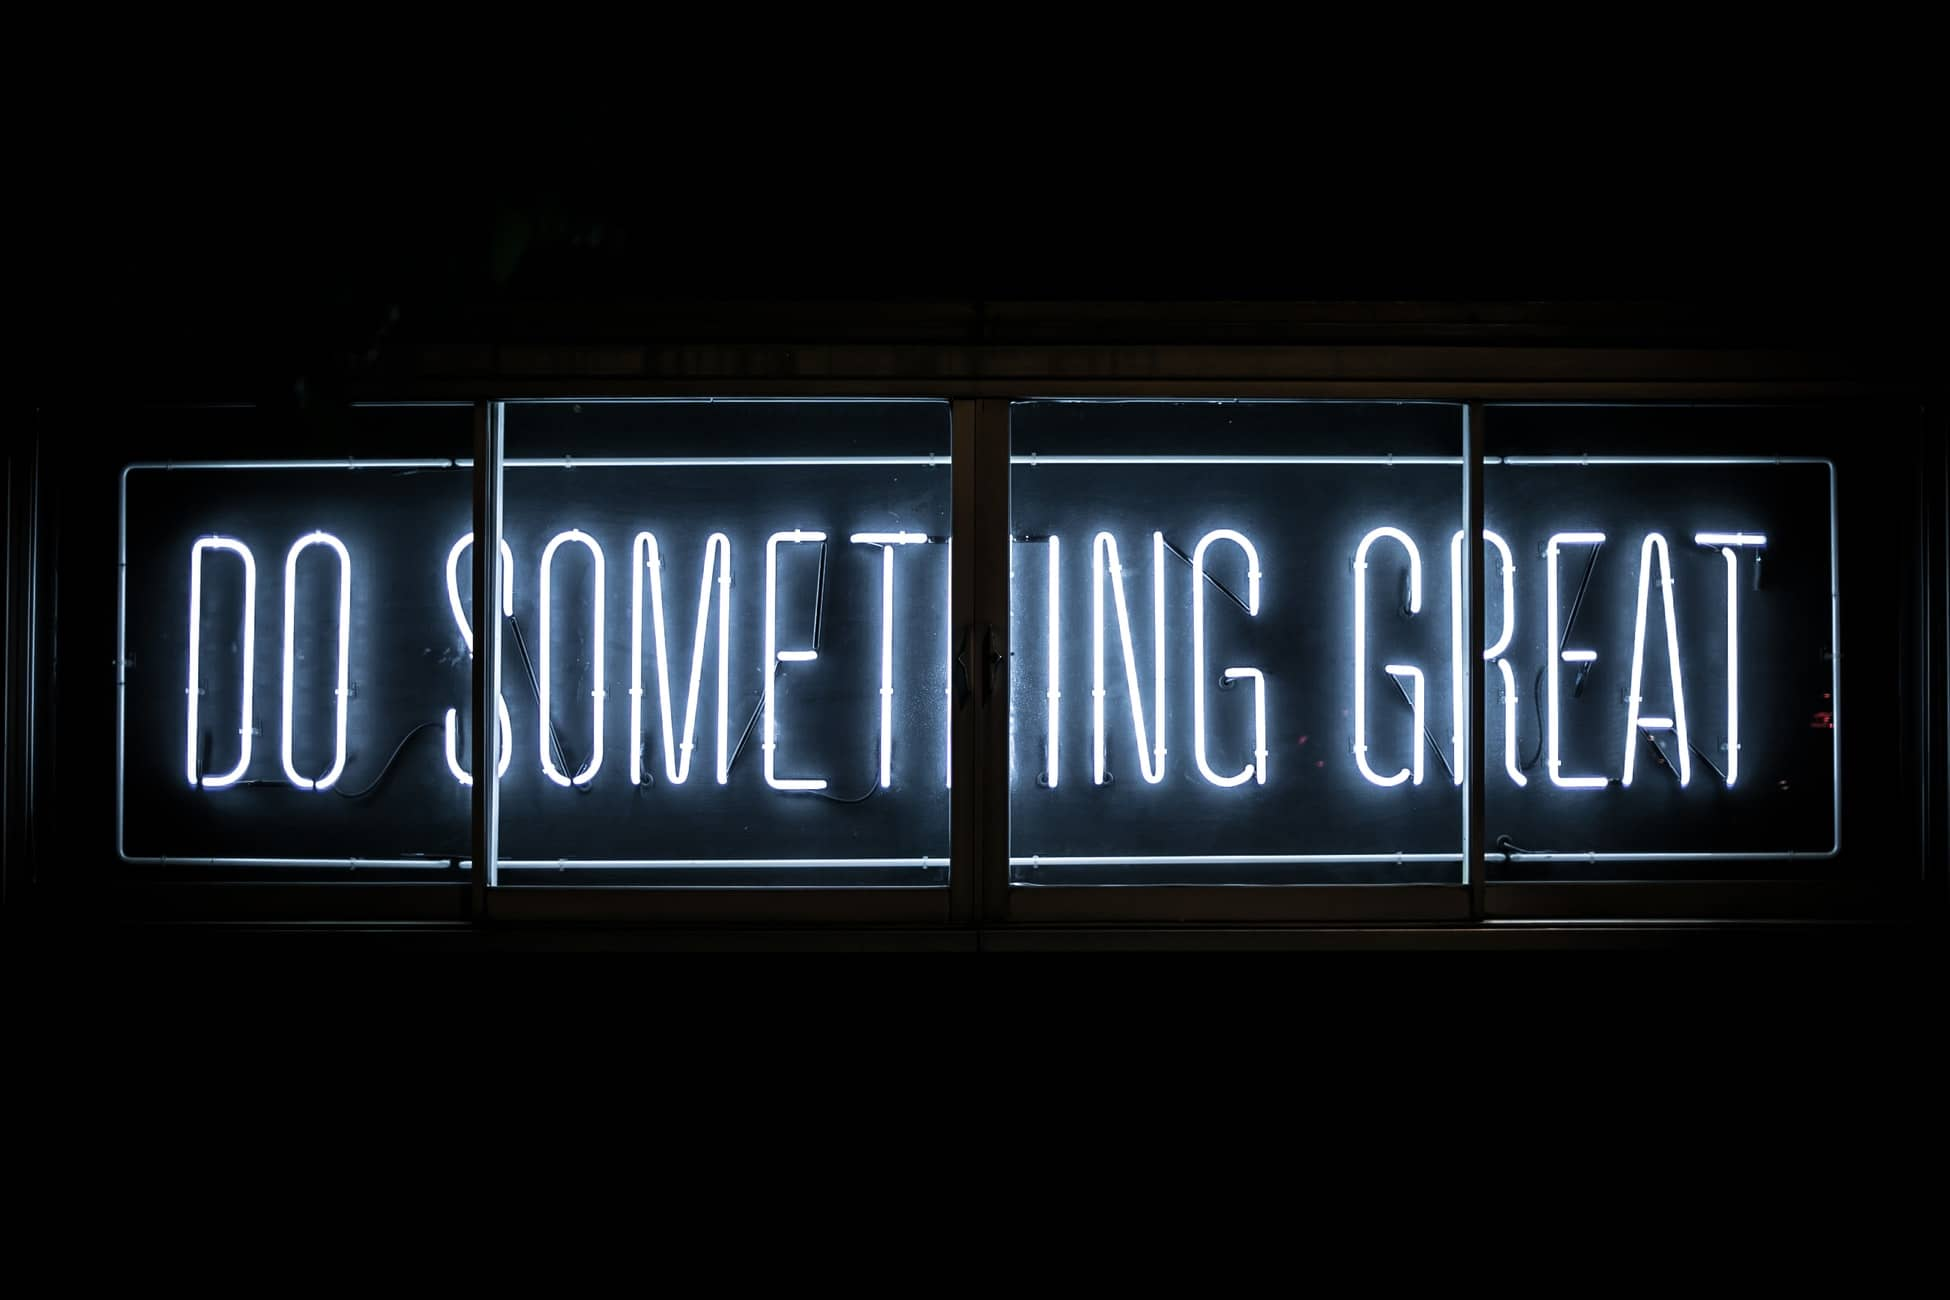 Neonletters met tekst Do Something Great